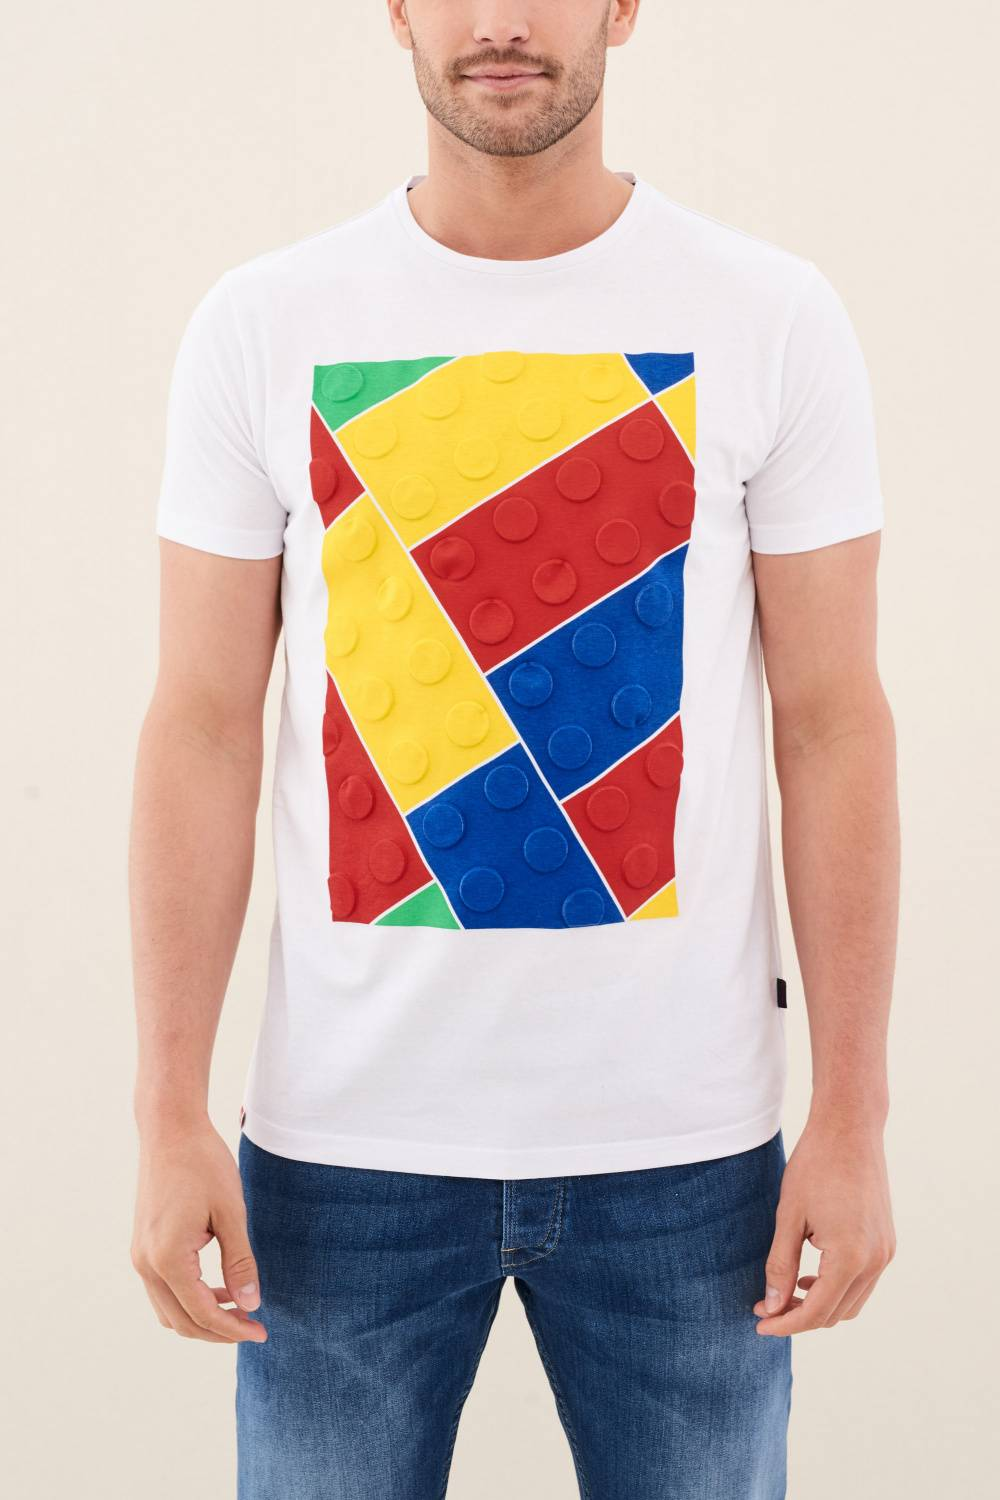 lego emblazoned with colorful T-shirt - Salsa